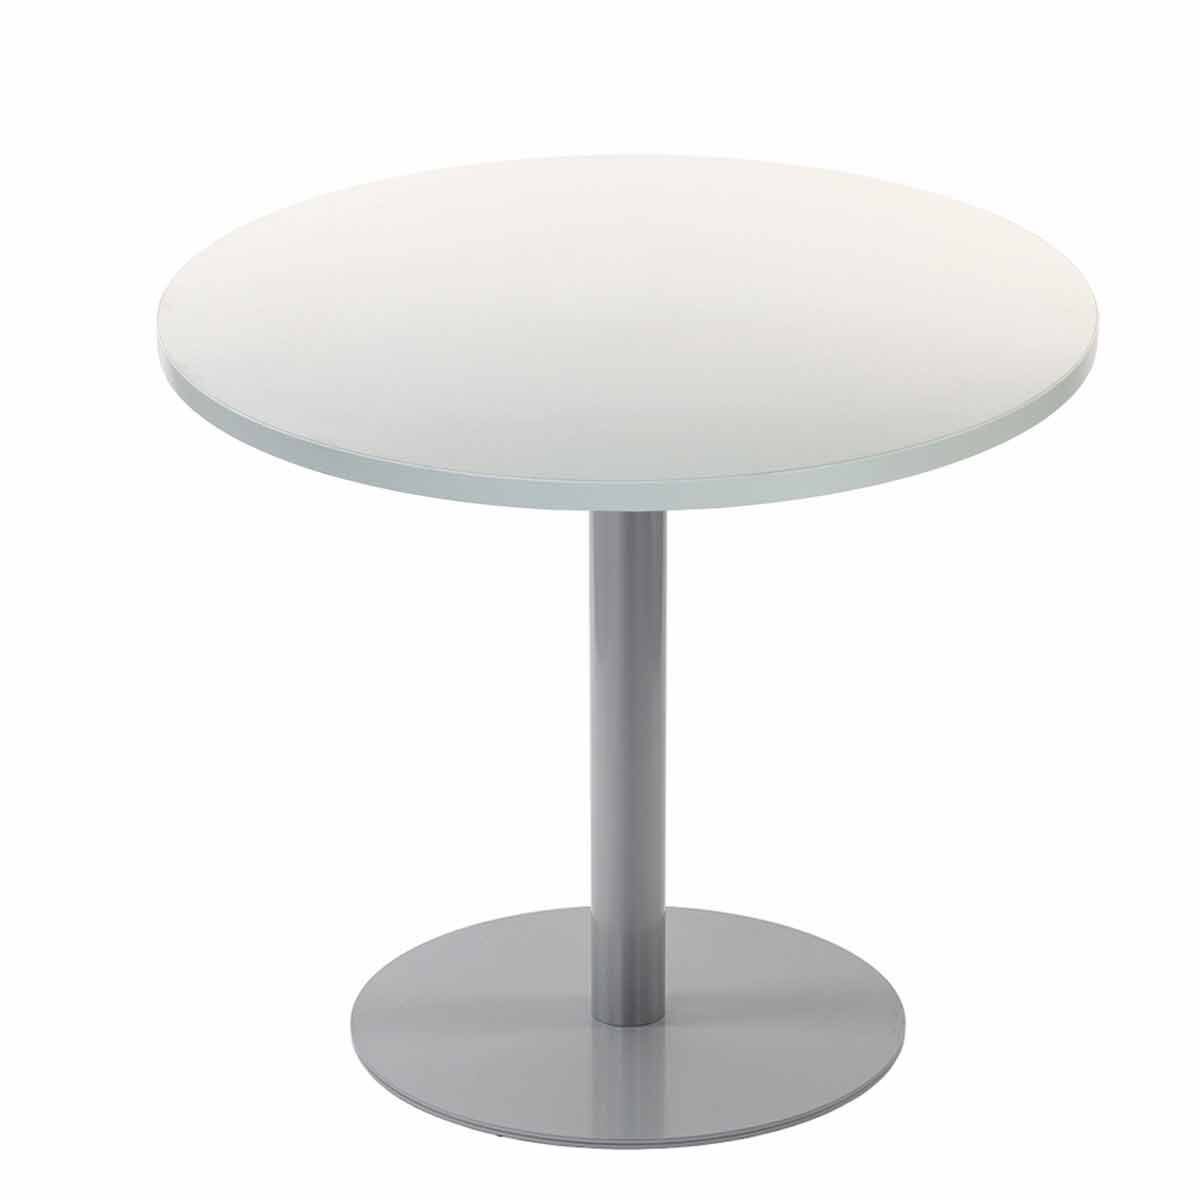 Tabilo Versa Connect Round Dining Table 700mm